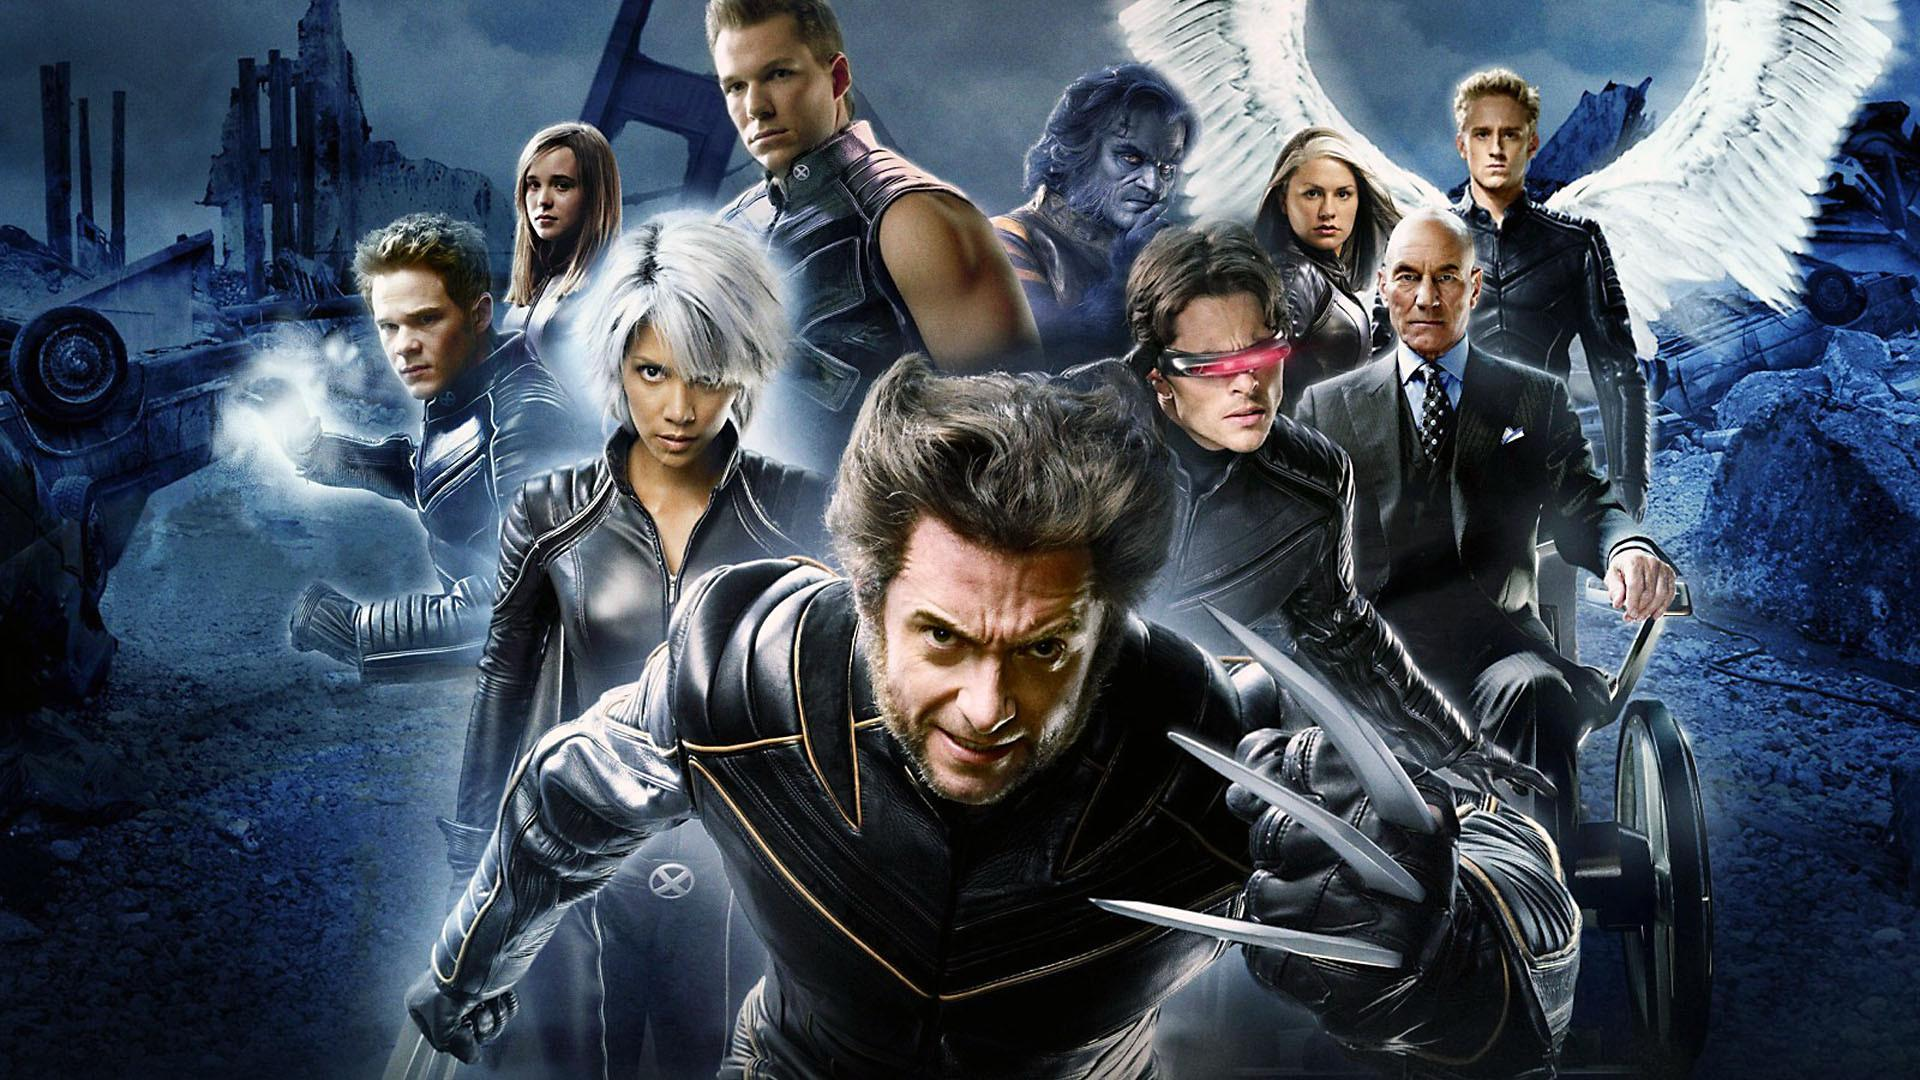 what x-men are you? (1)